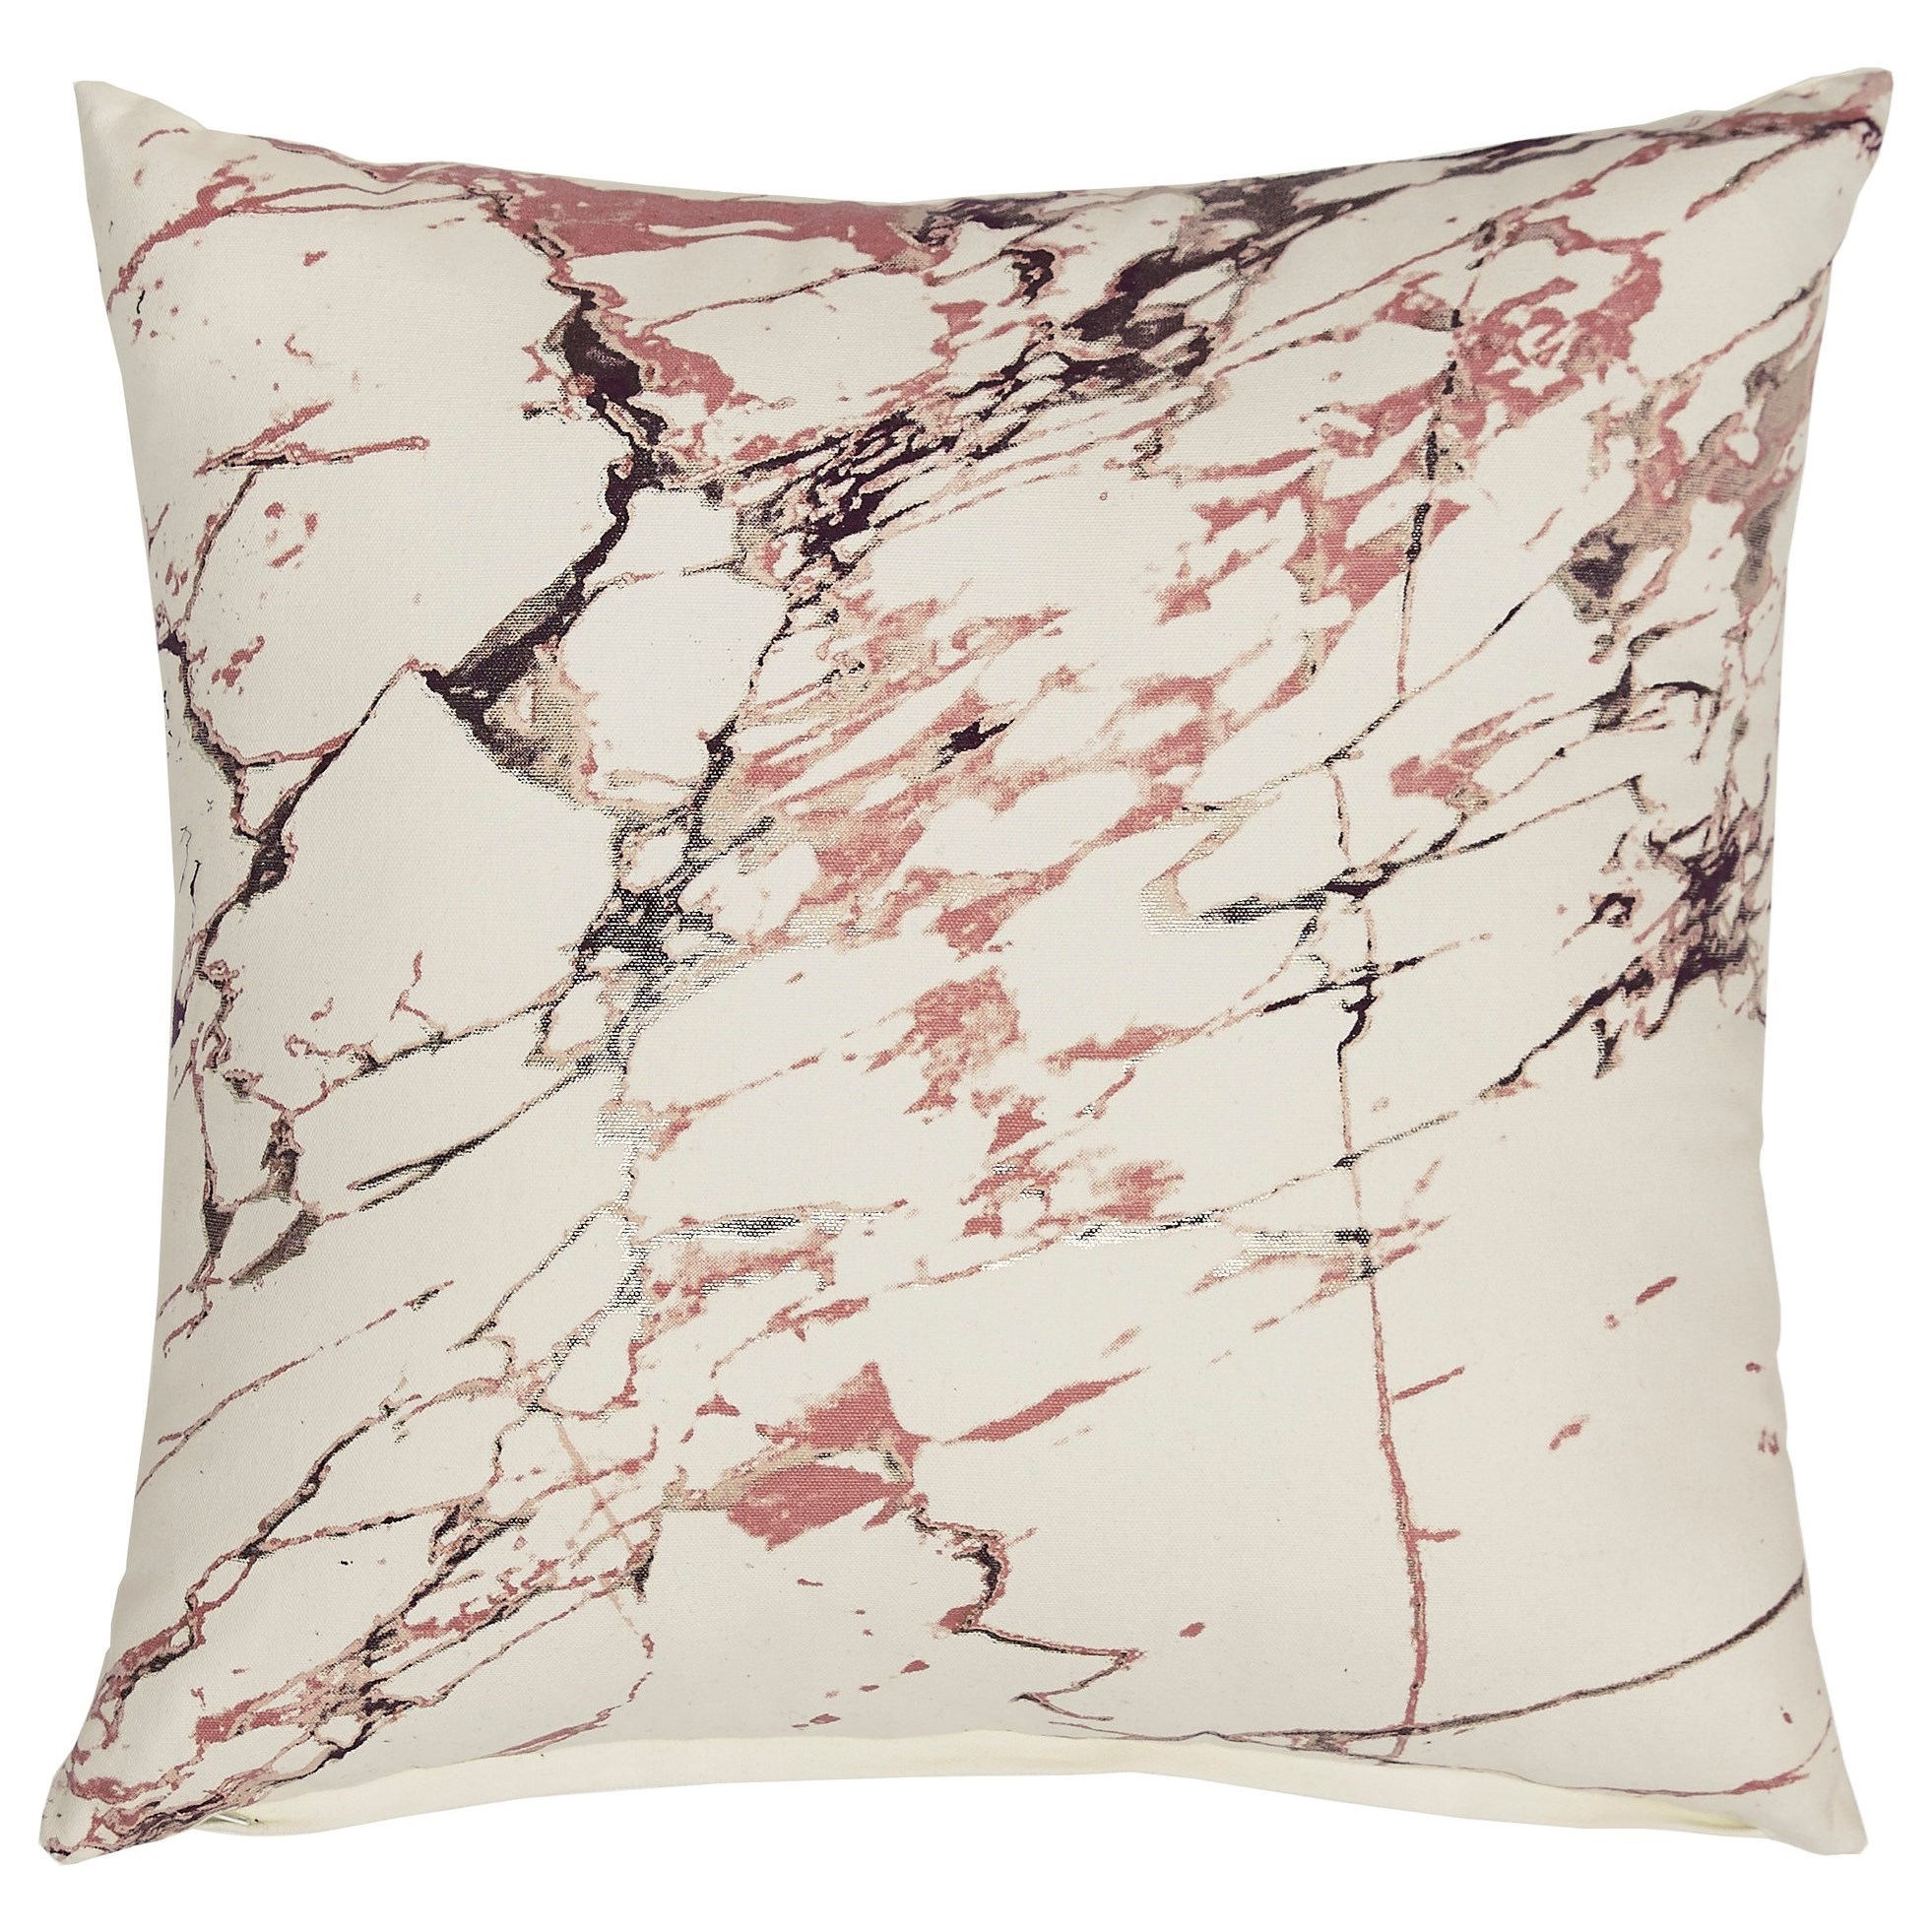 Pillows Mikiesha Metallic Foil Pillow by Signature Design by Ashley at Northeast Factory Direct